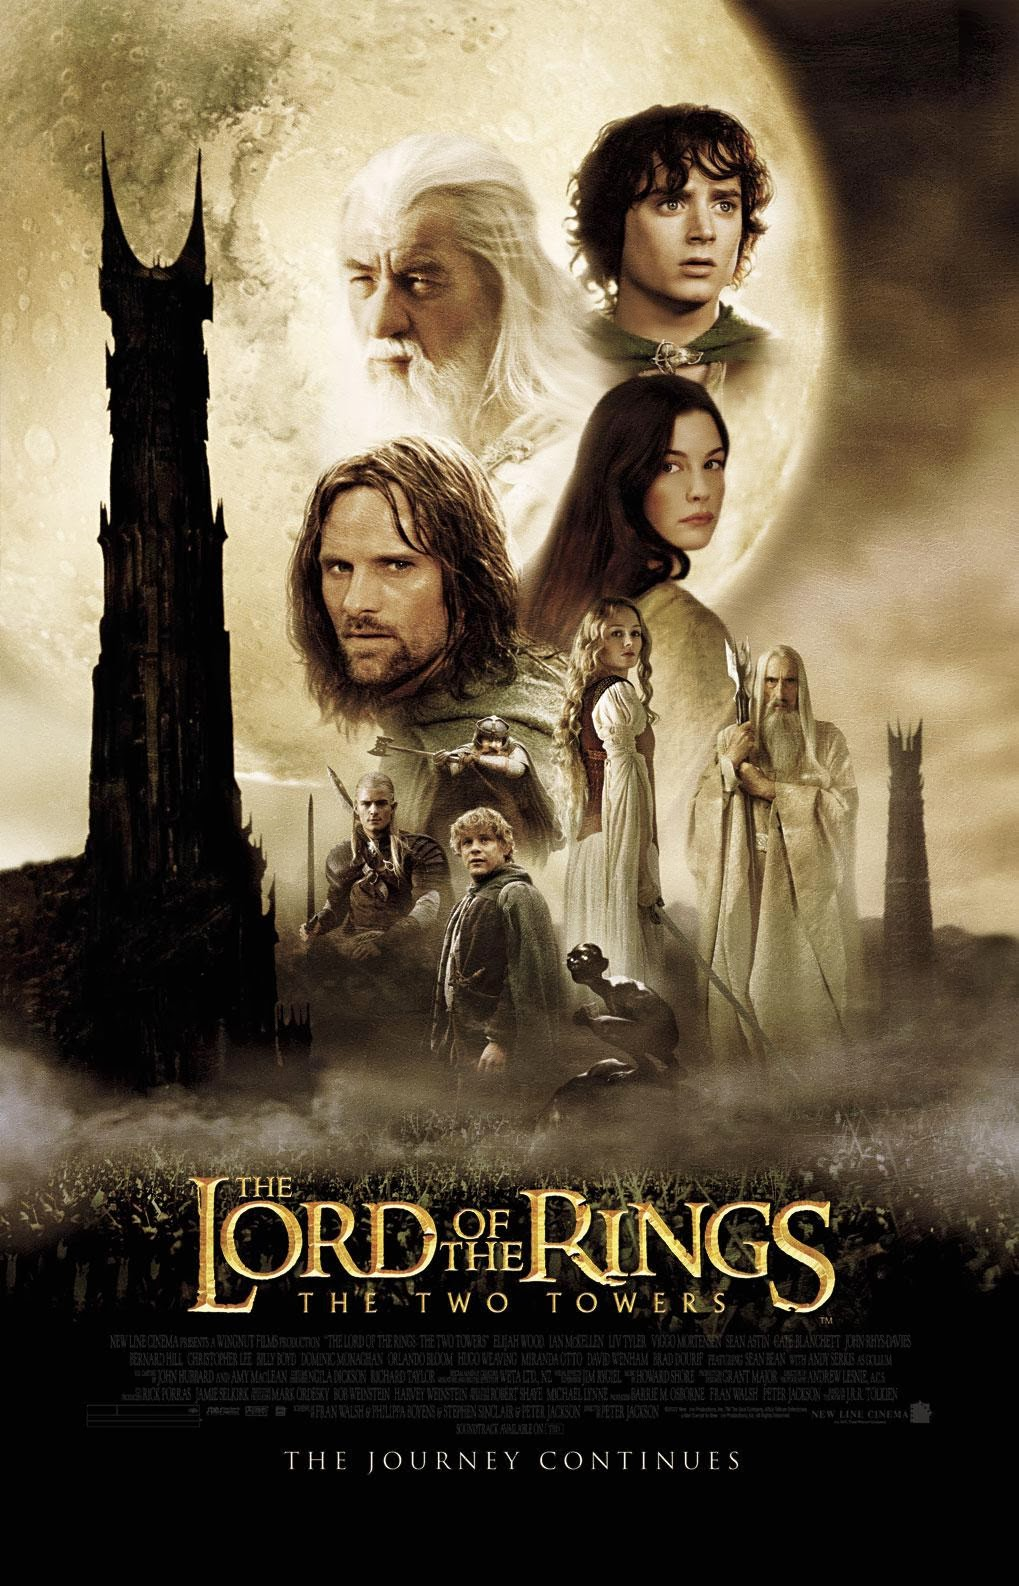 Download Film The Lord of the Rings: The Two Towers (2002) BluRay 720p